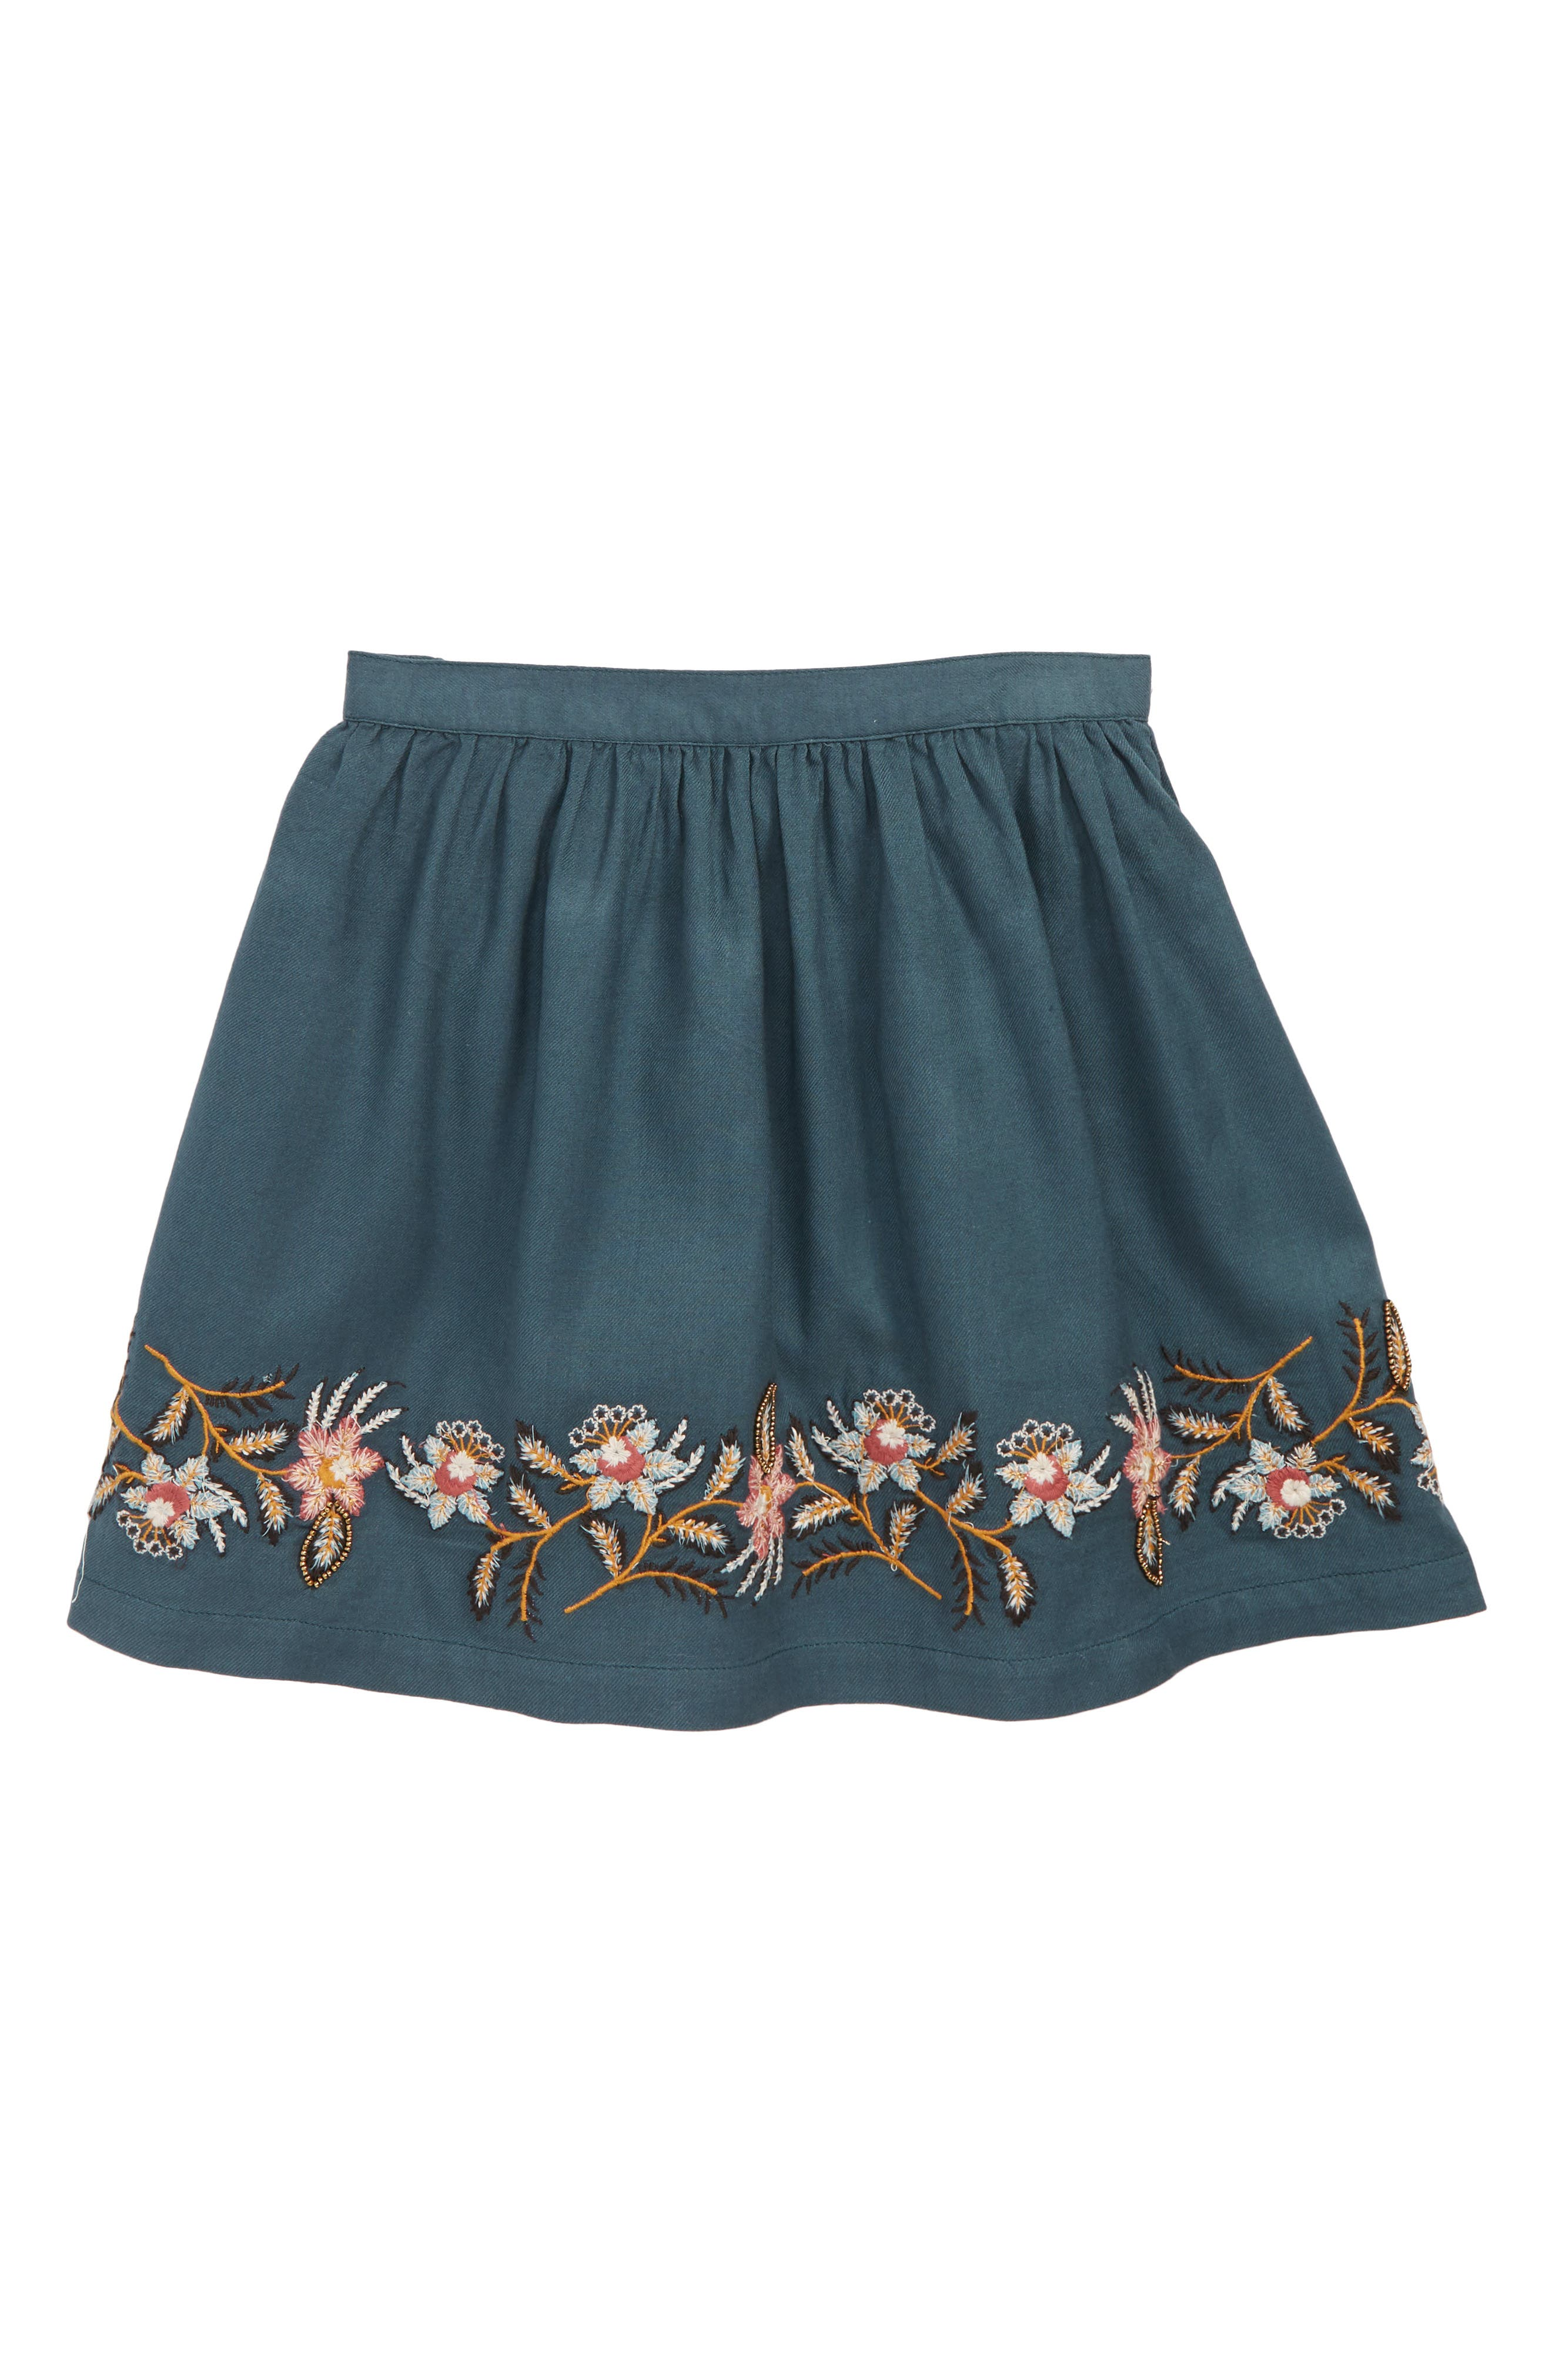 Peek Embroidered Skirt,                             Main thumbnail 1, color,                             307